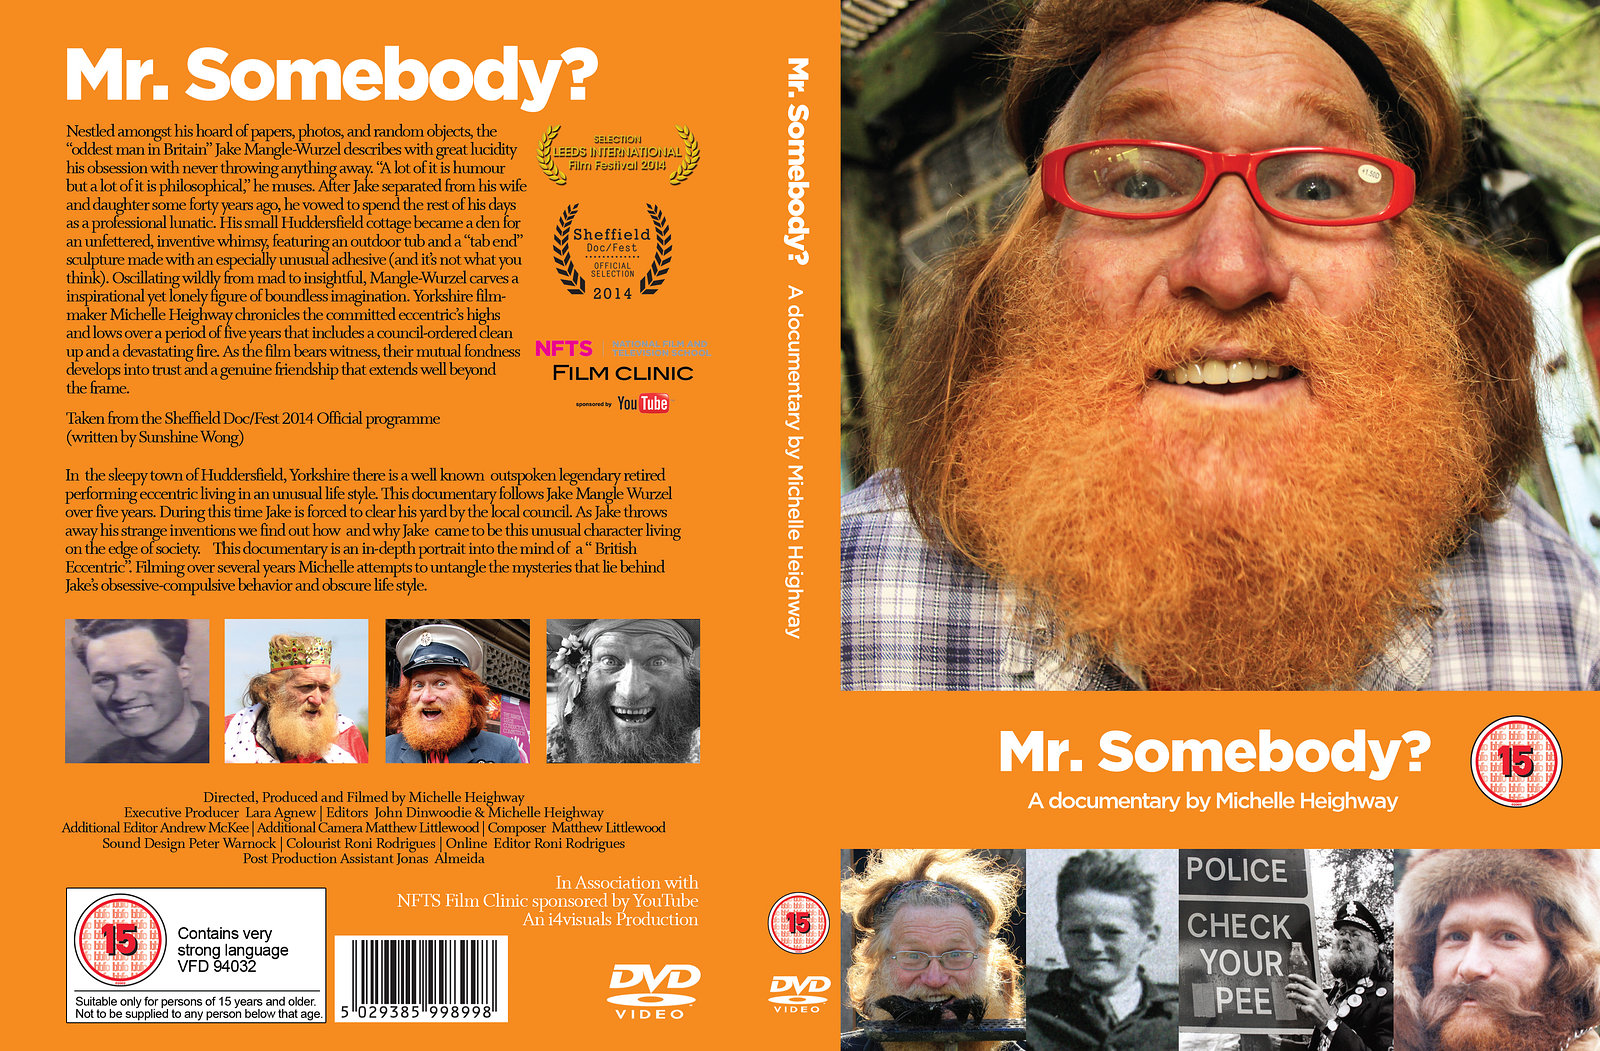 Mr. Somebody Cover Designs by Hazel Arthur